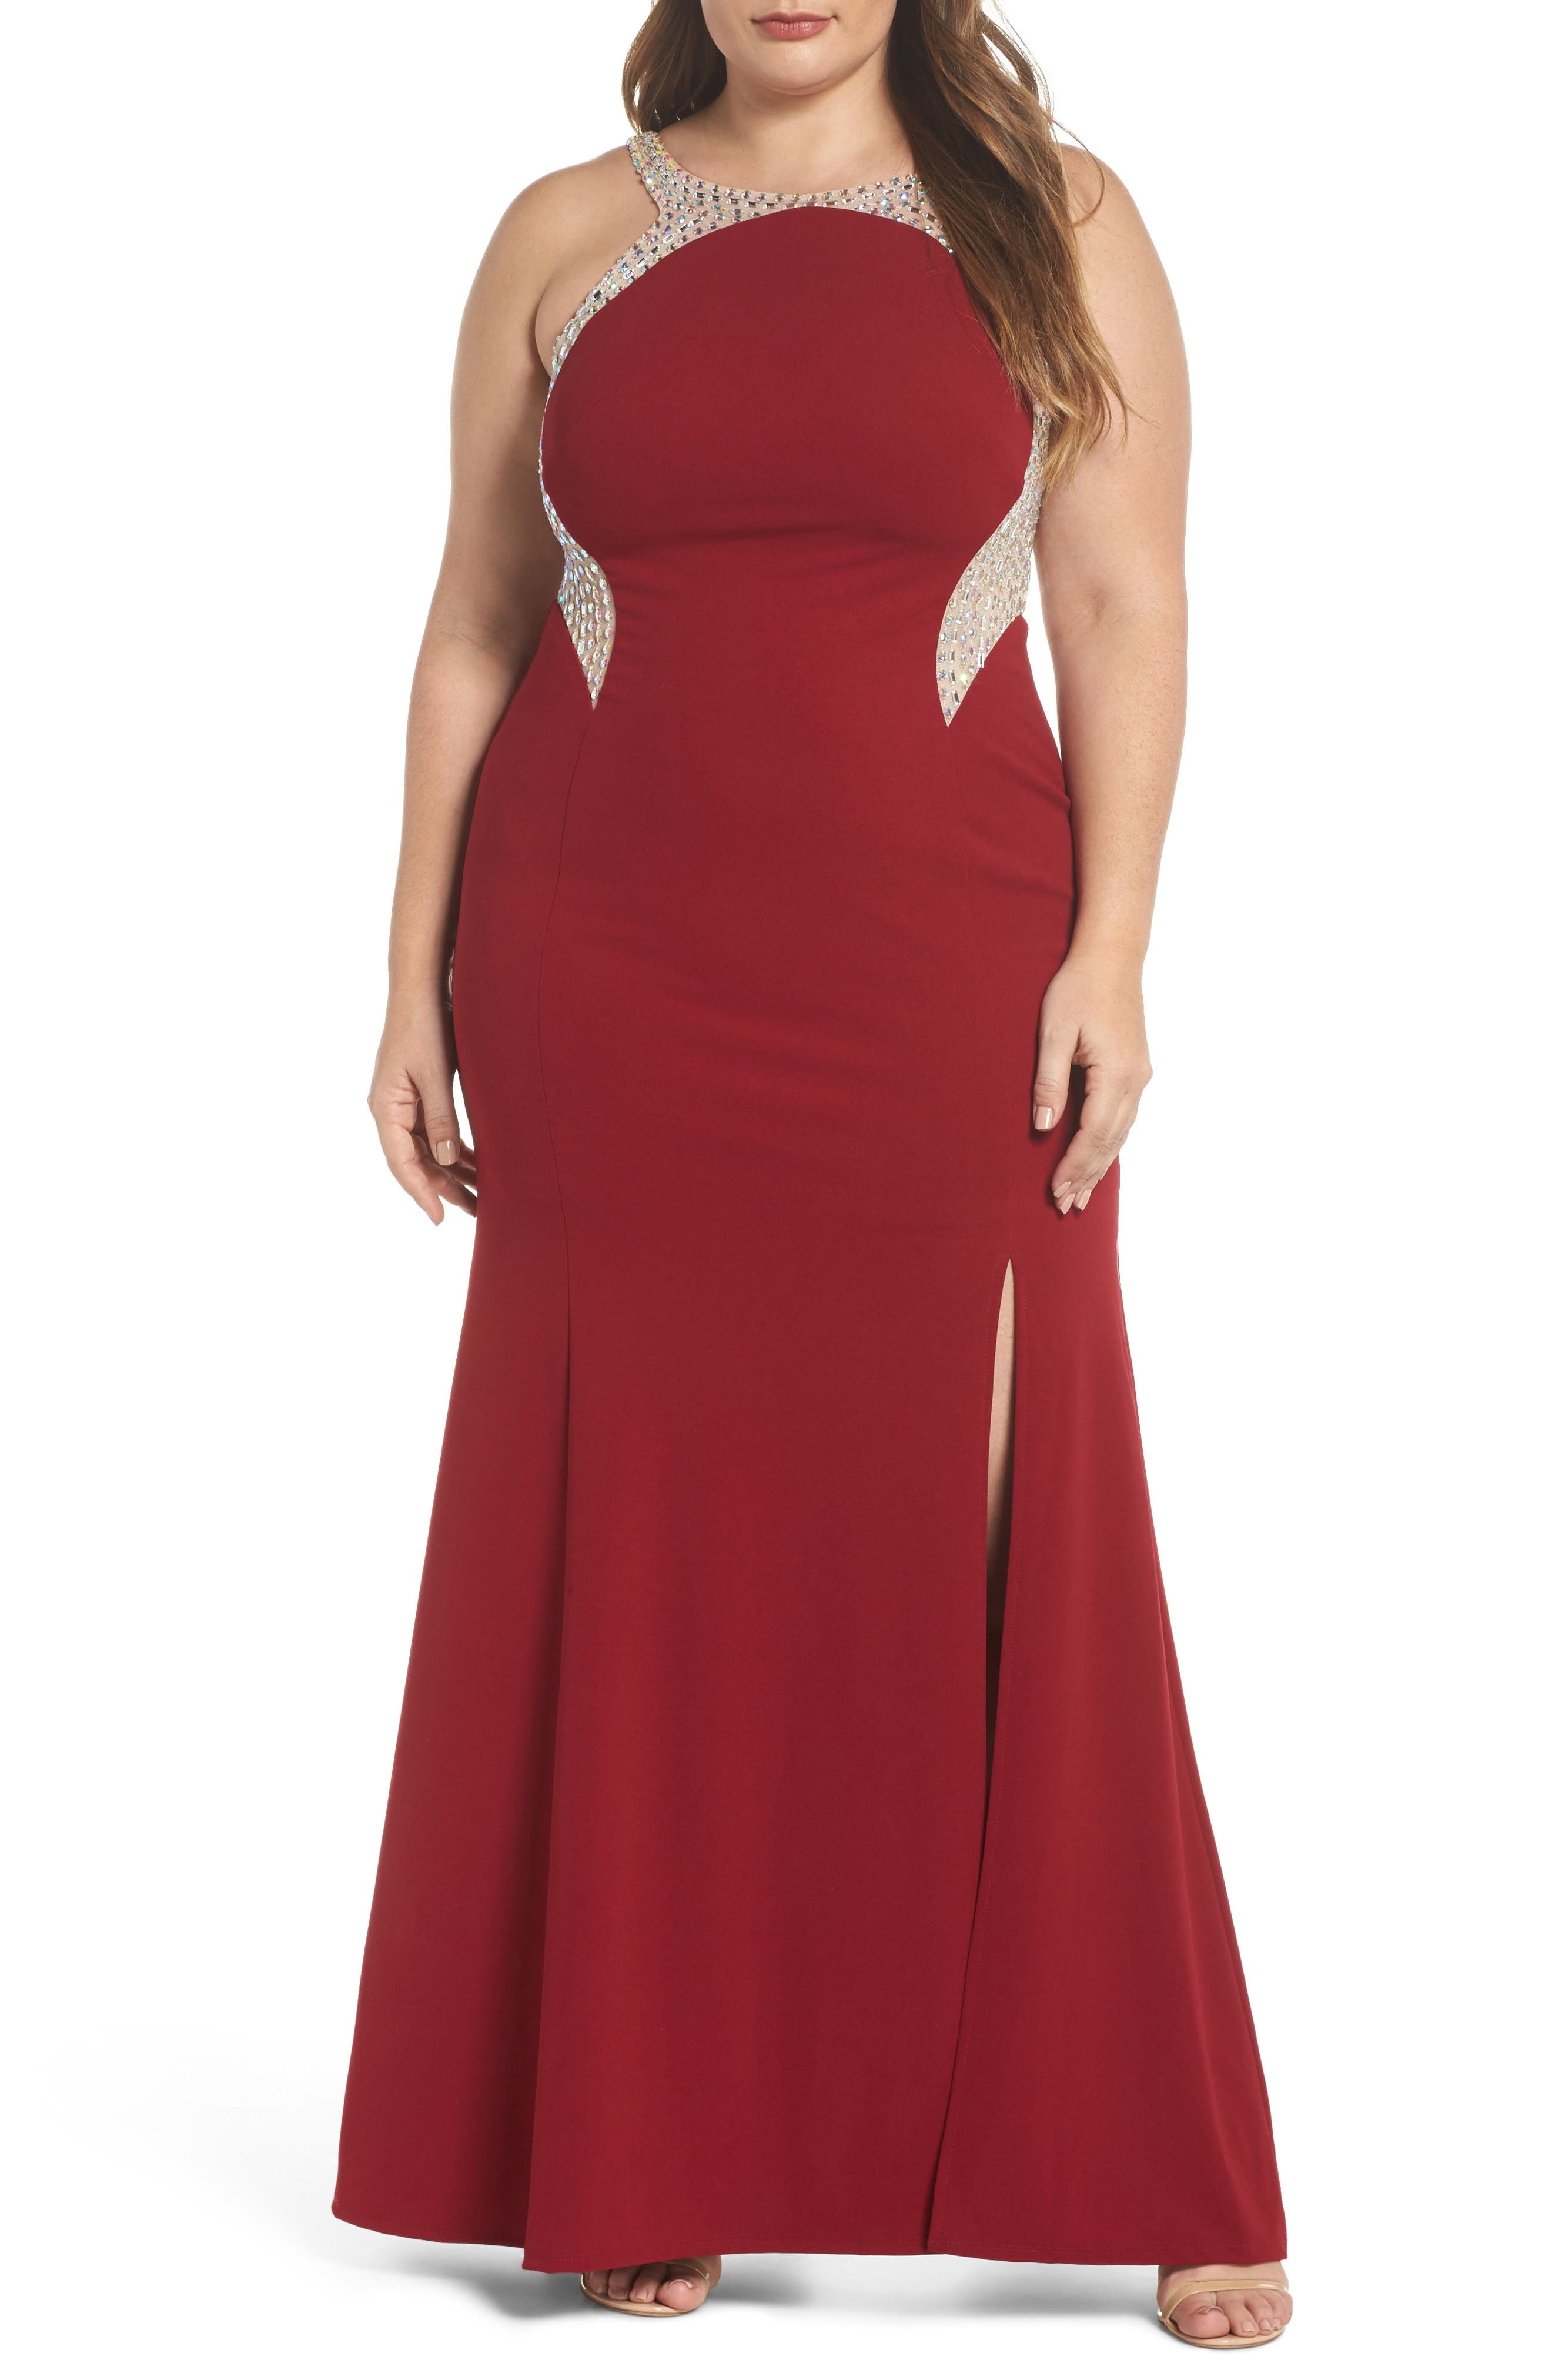 Decode 1.8 Embellished Illusion Gown (Plus Size)